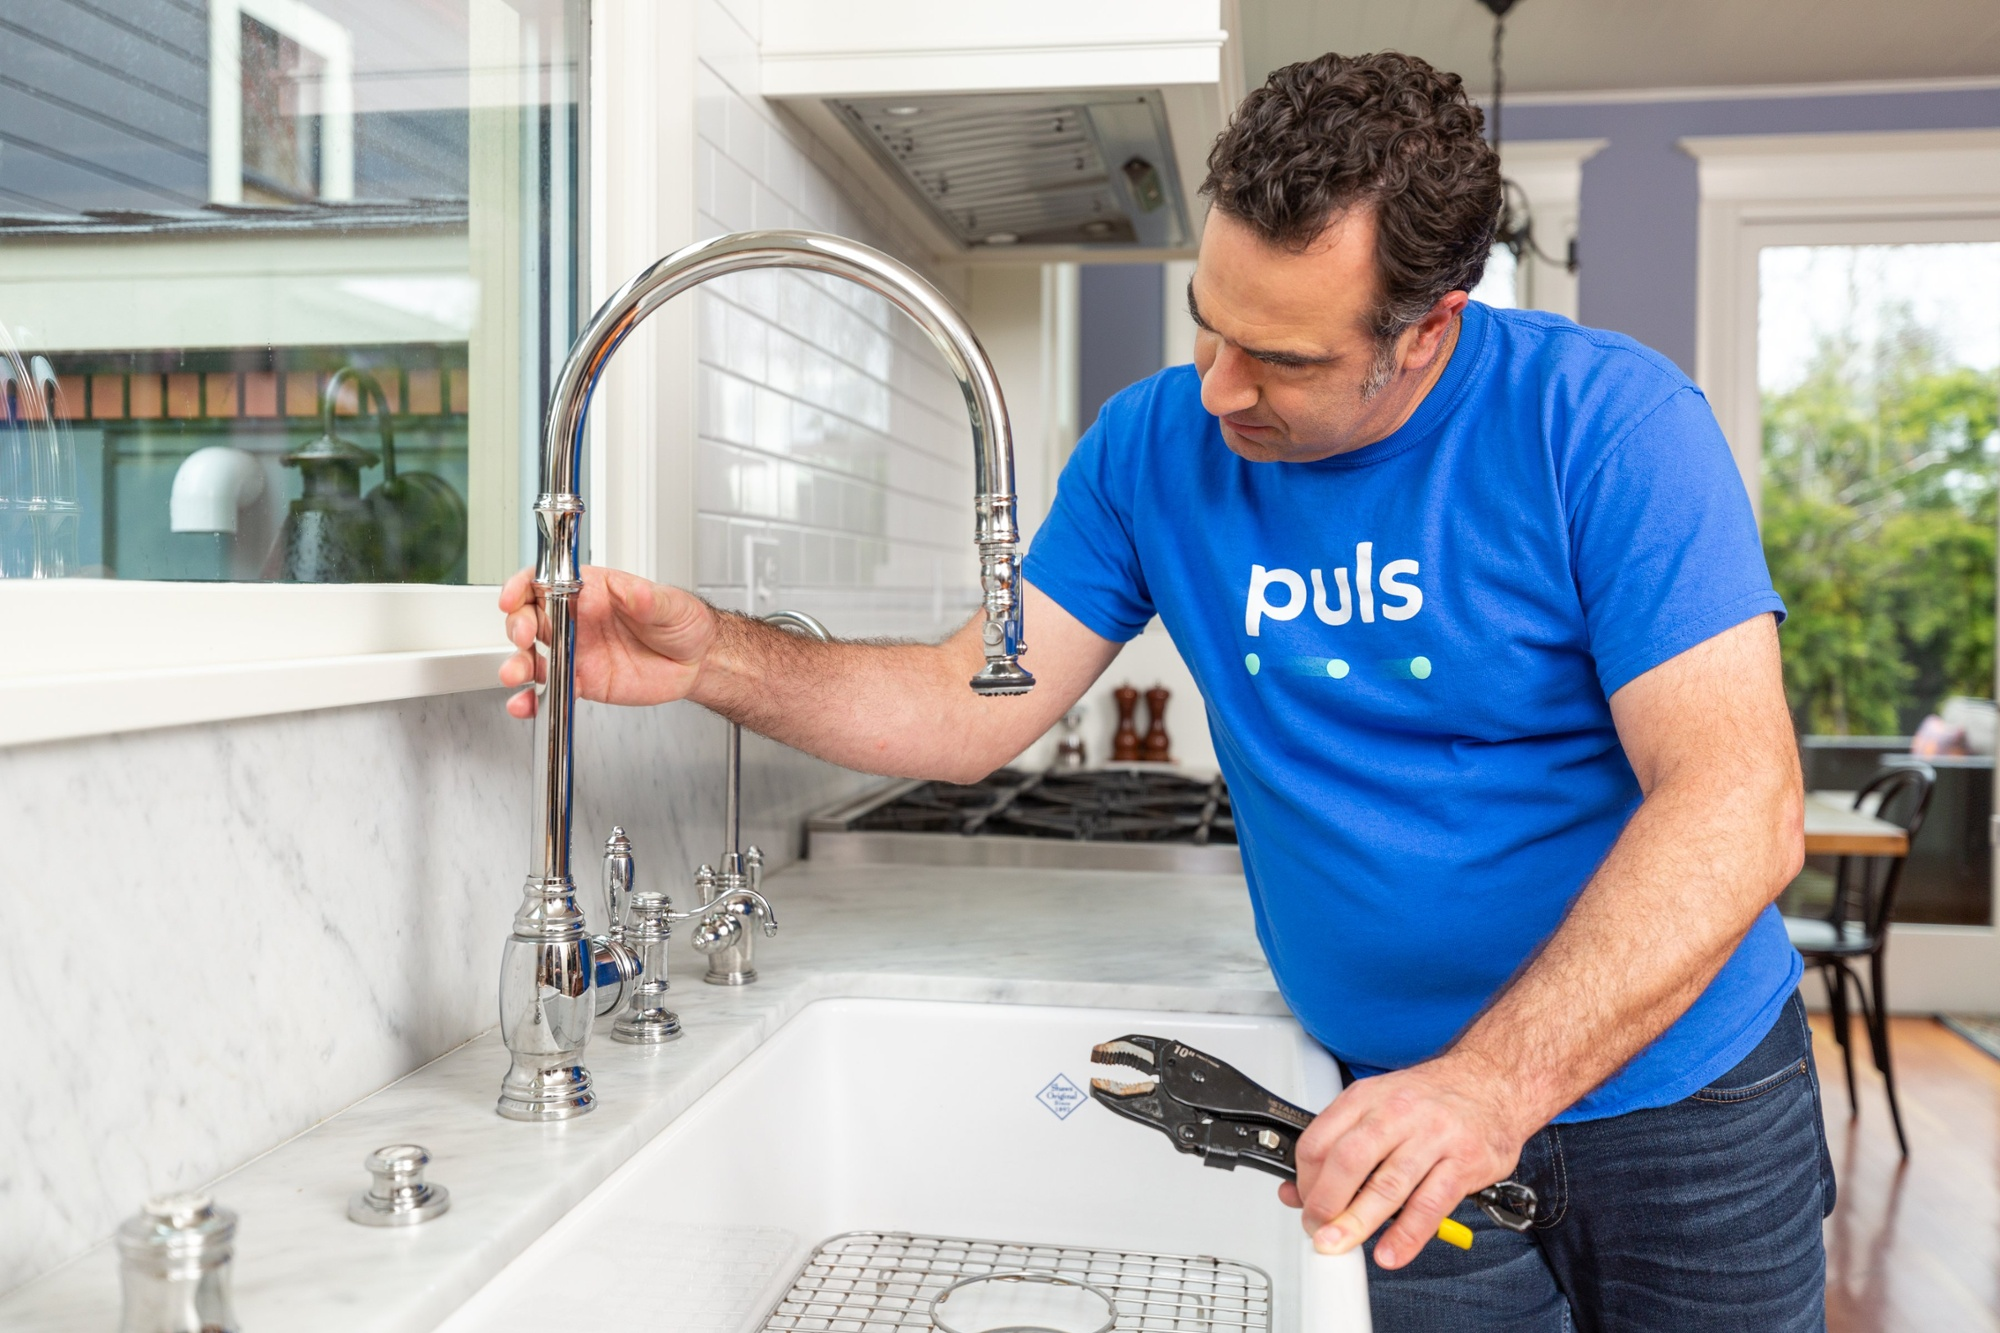 Puls technician replacing kitchen faucet